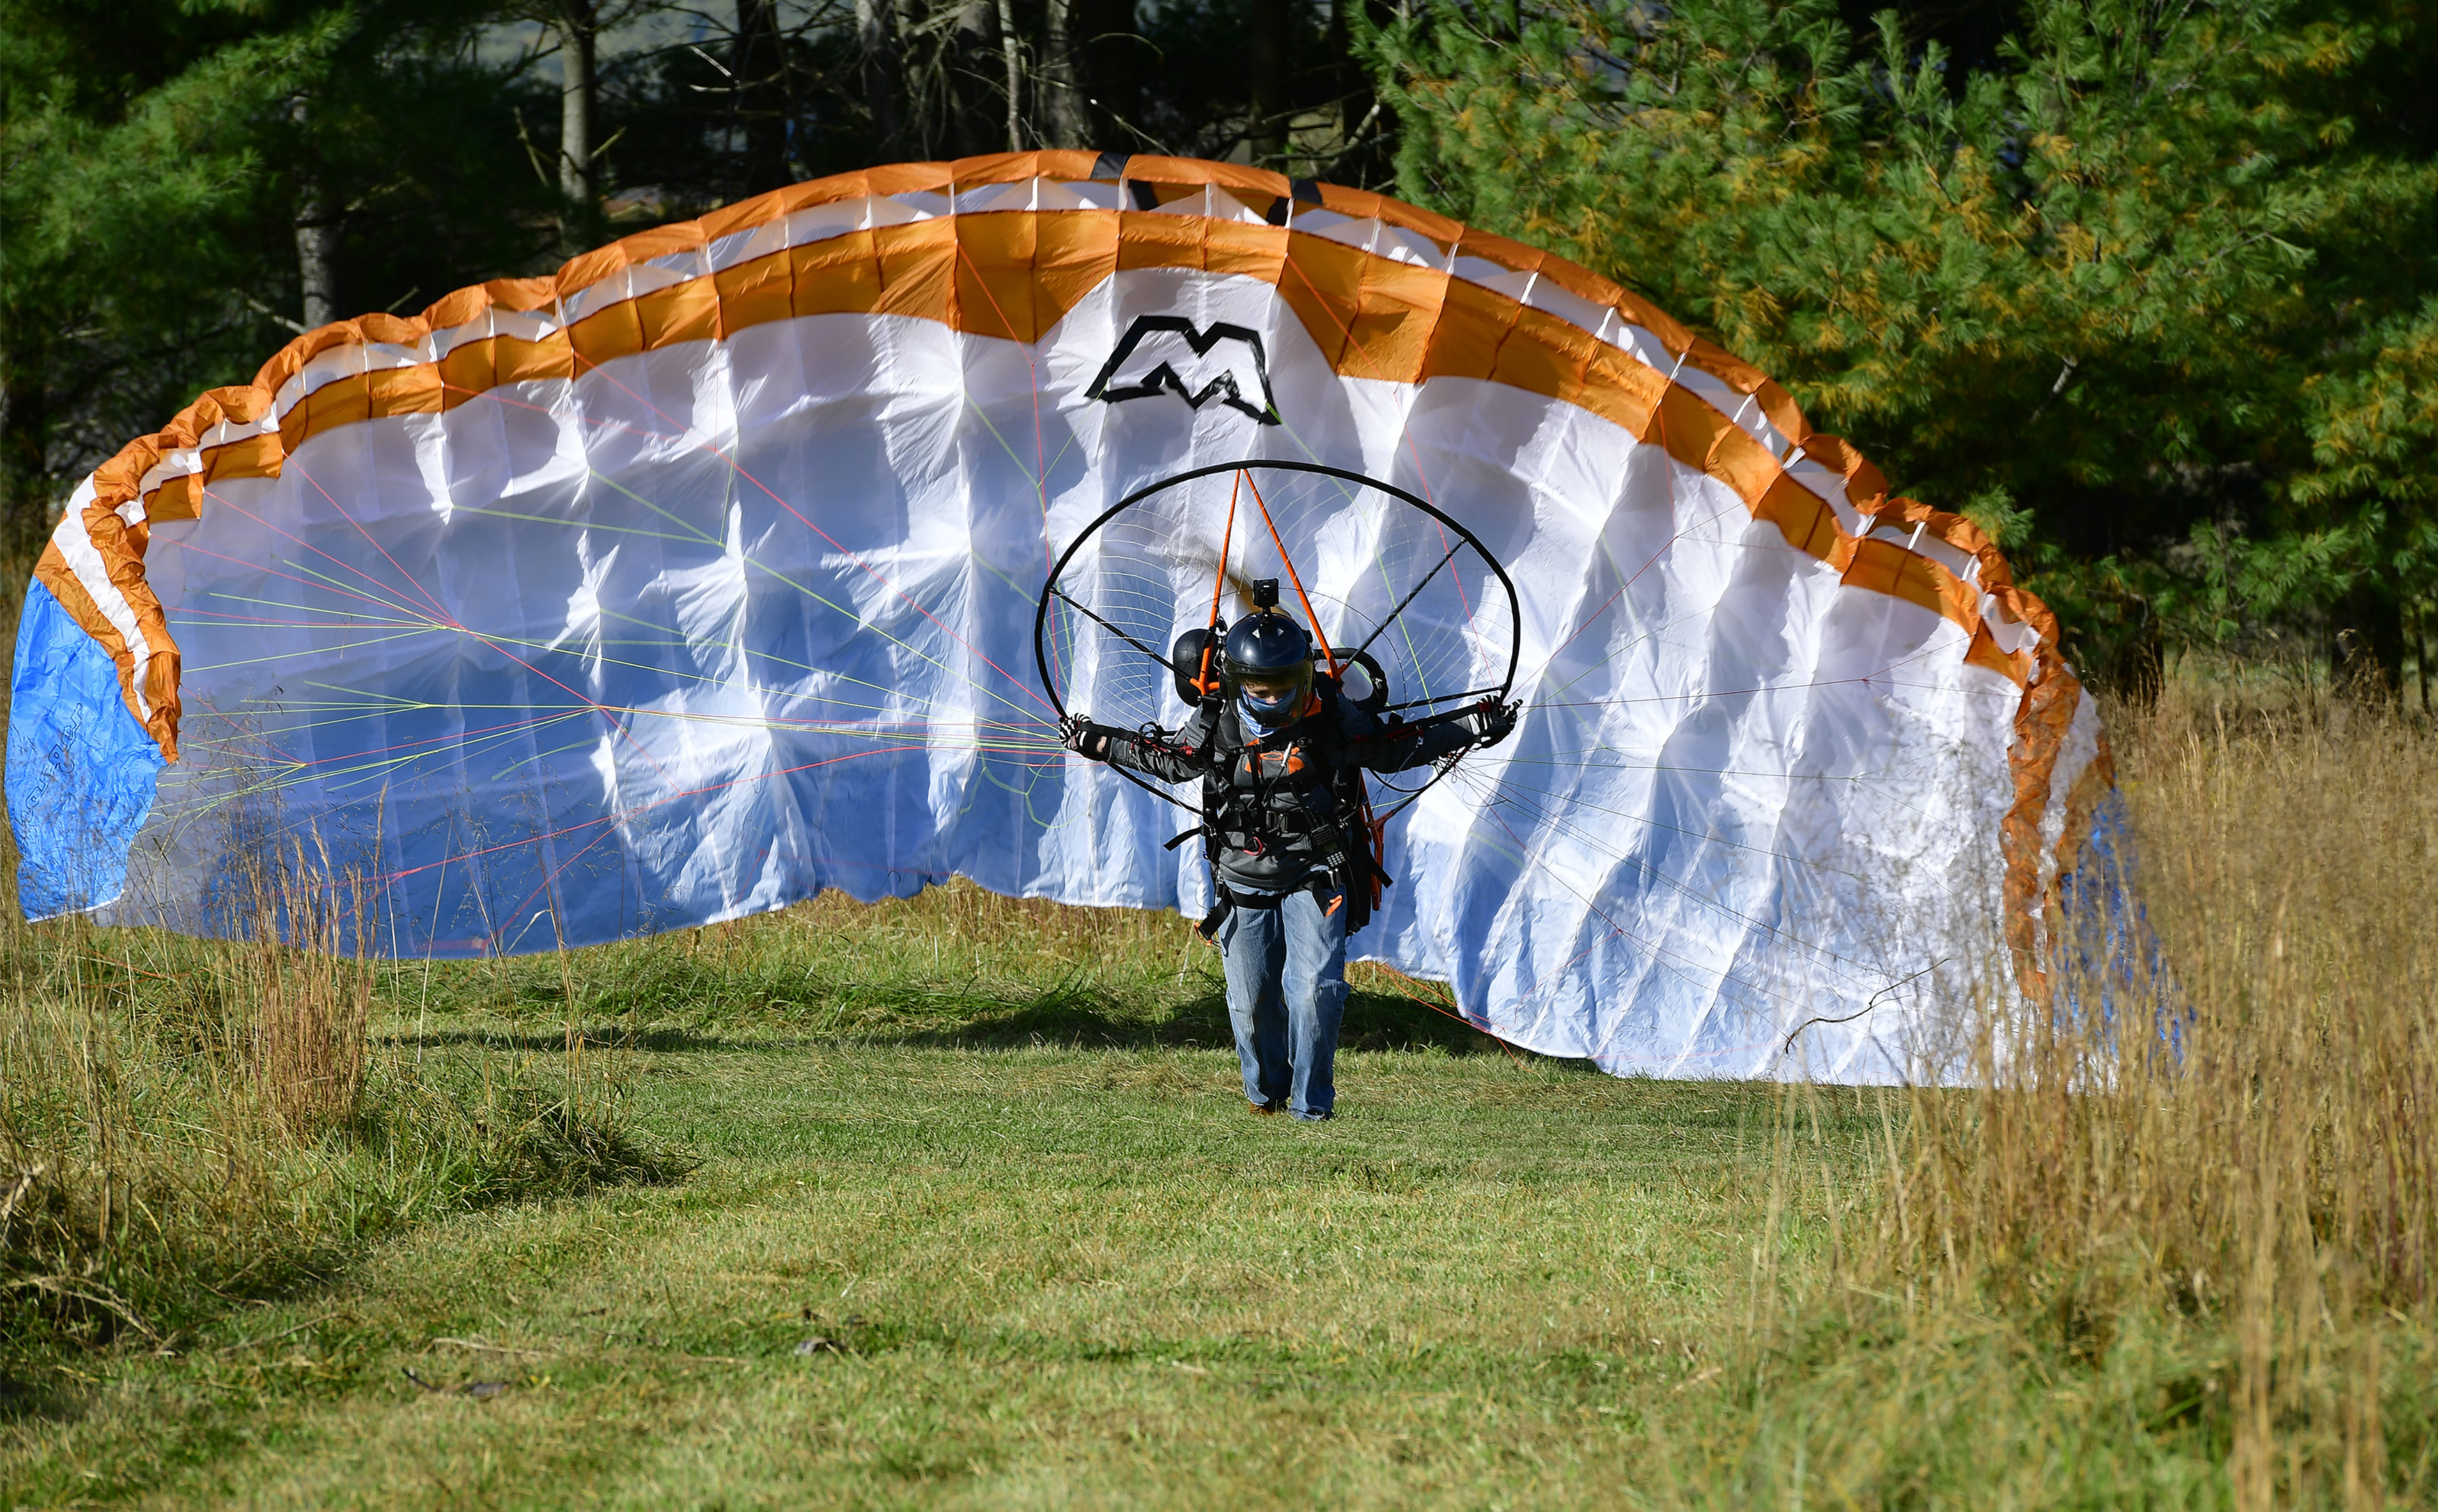 Powered paraglider pilot Henry Scott lifts off from a grass strip in Lovettsville, Virginia. Photo by David Tulis.